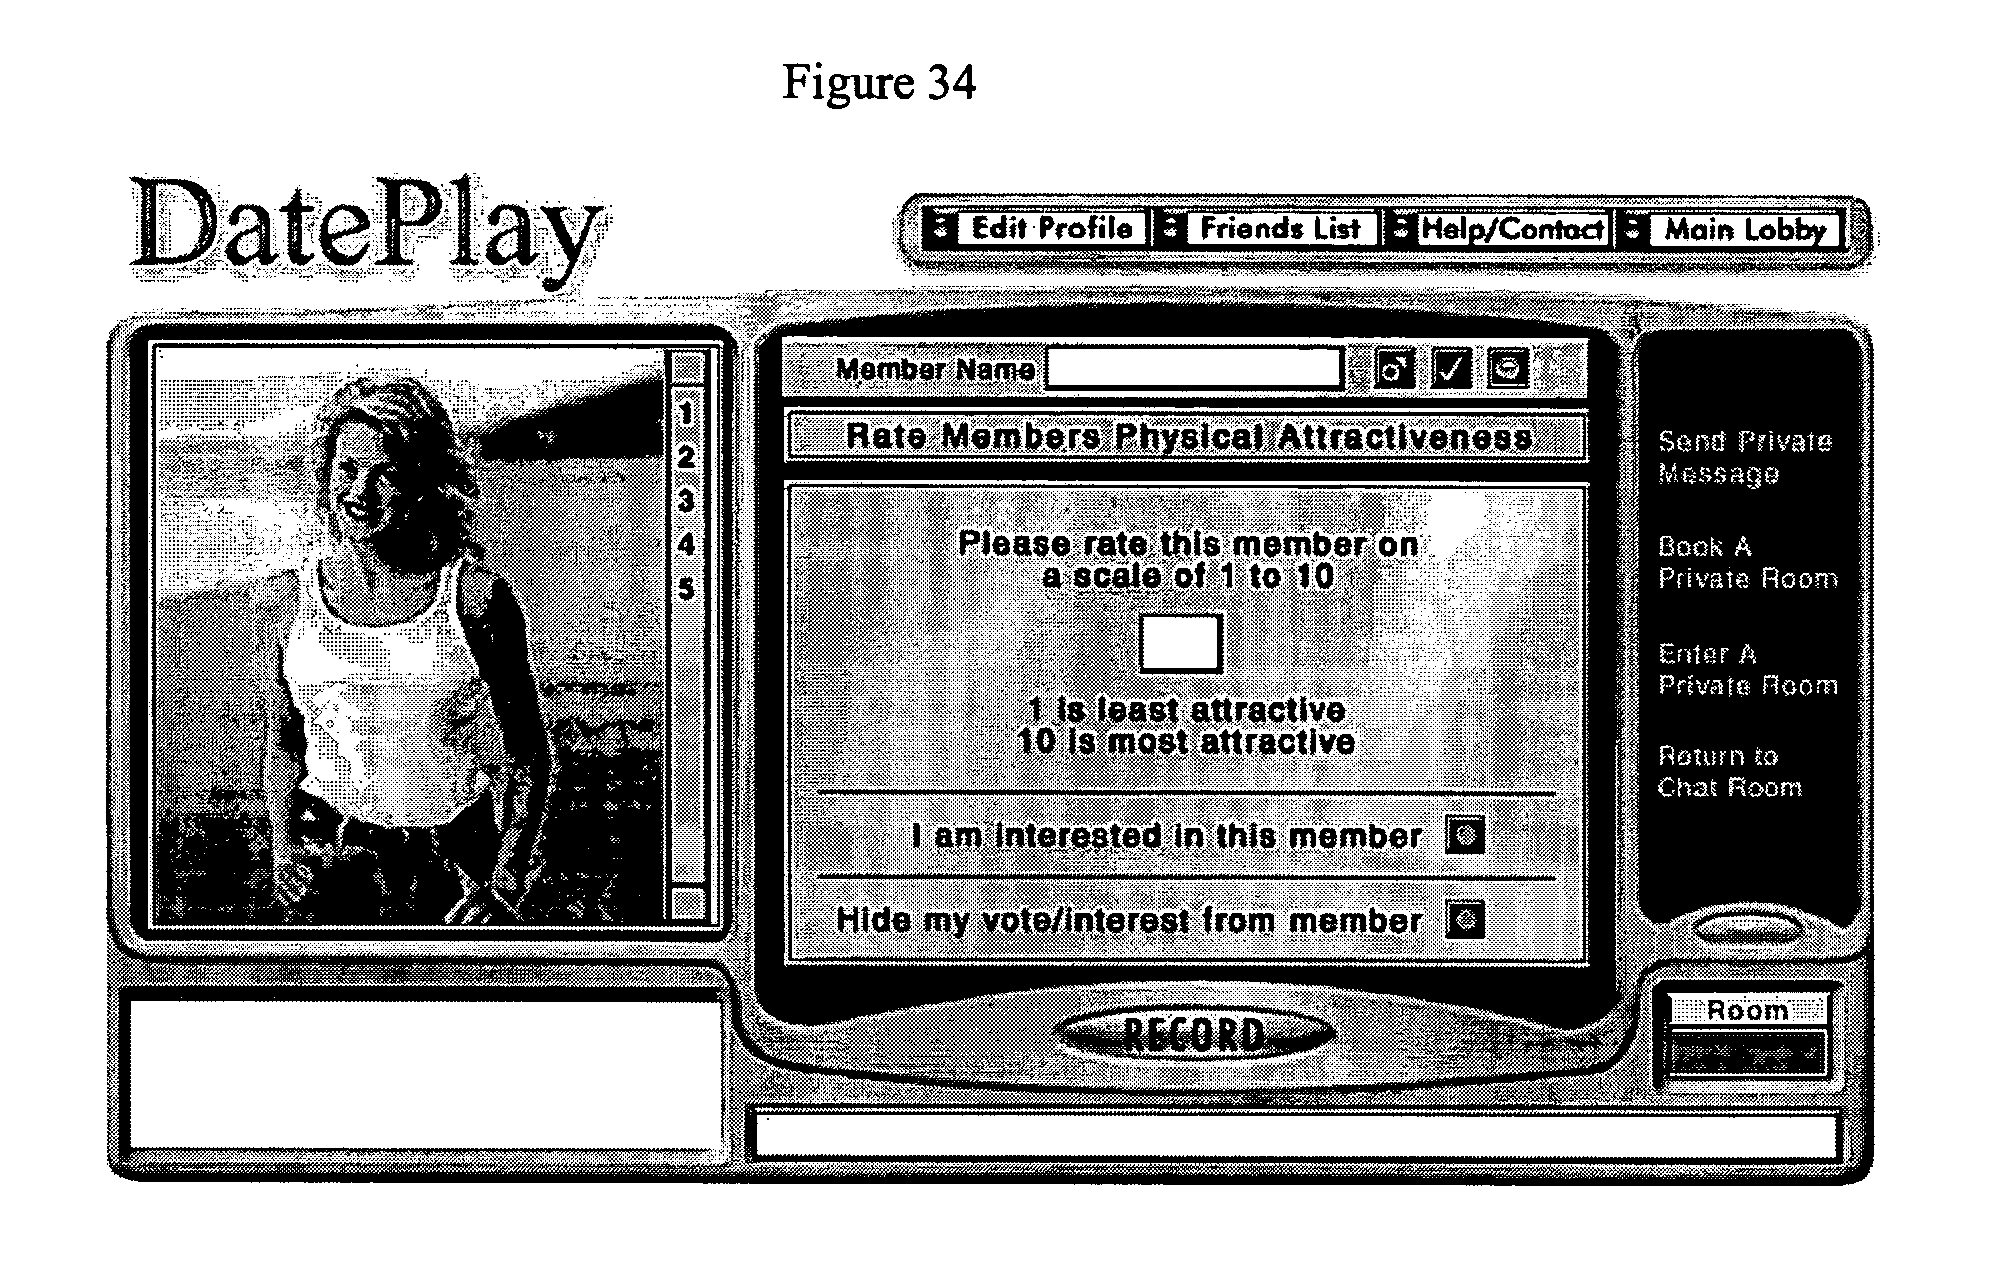 dating site patents So you want to date someone who shares your education level and ambition and maybe, just maybe, you'd like them to be in your same neighborhood, attractive enough to at least look good in black-and-white photos, with a height that meets your way-too-restrictive height preferences.